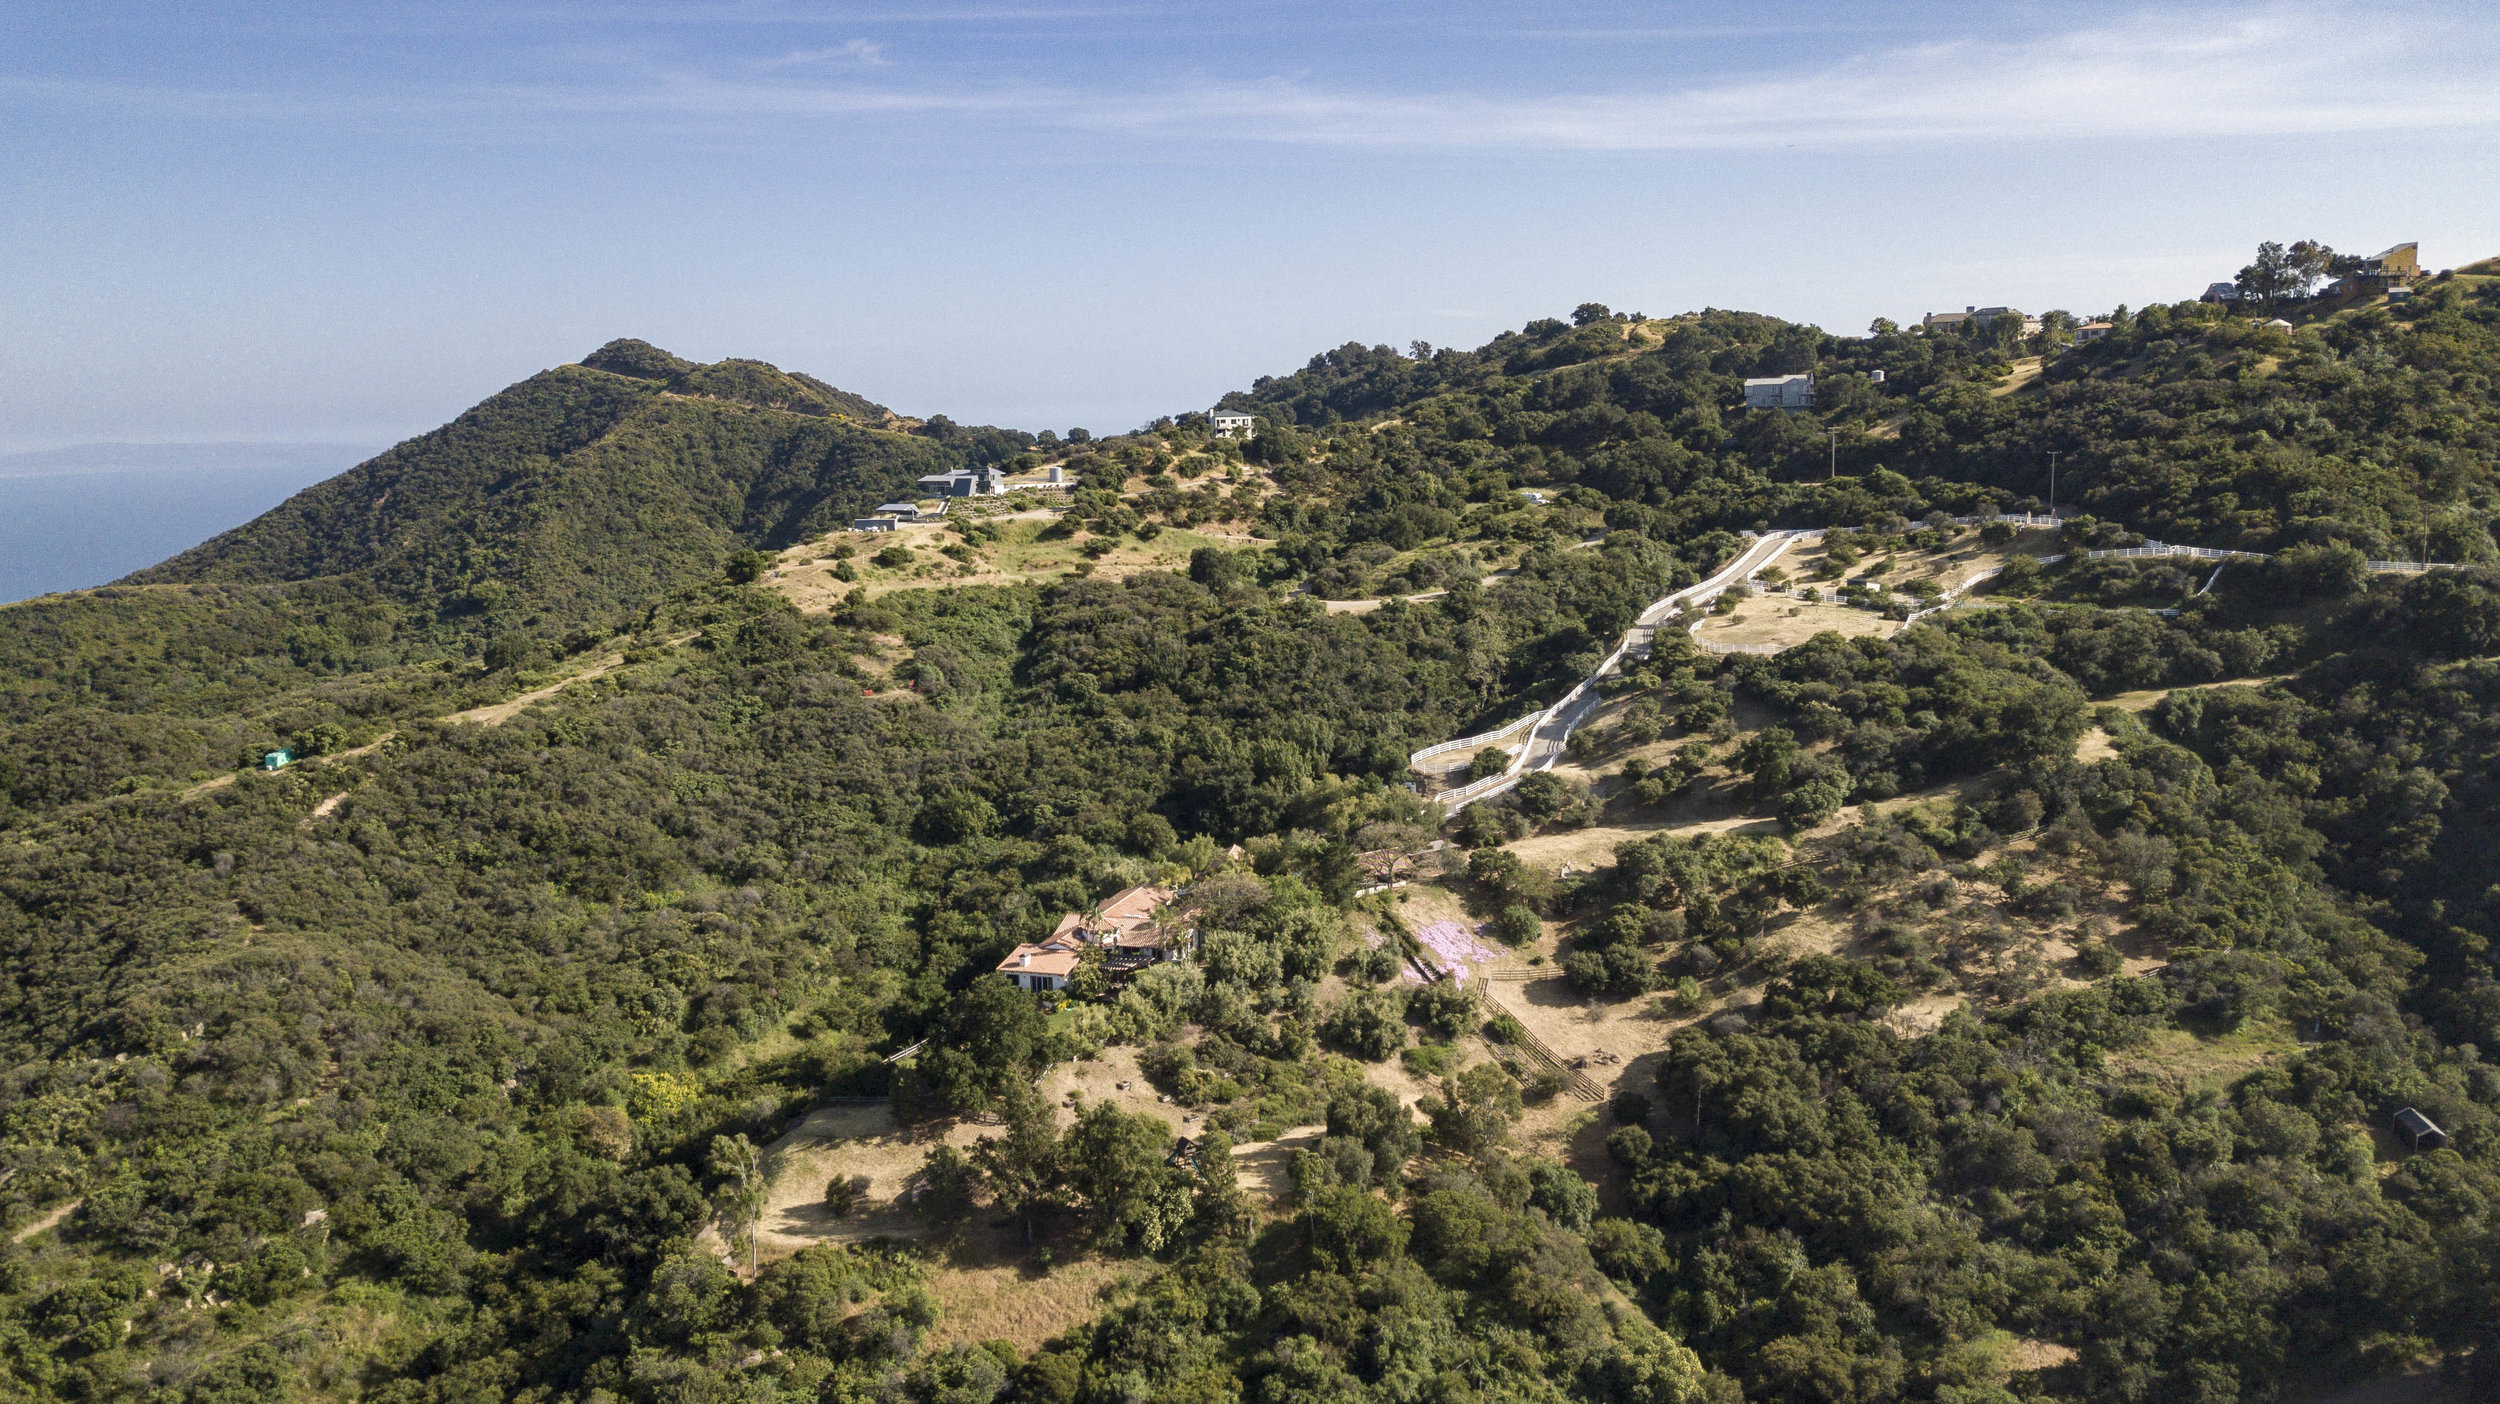 021 Exterior 20333 Reigate Road Topanga For Sale Lease The Malibu Life Team Luxury Real Estate.jpg